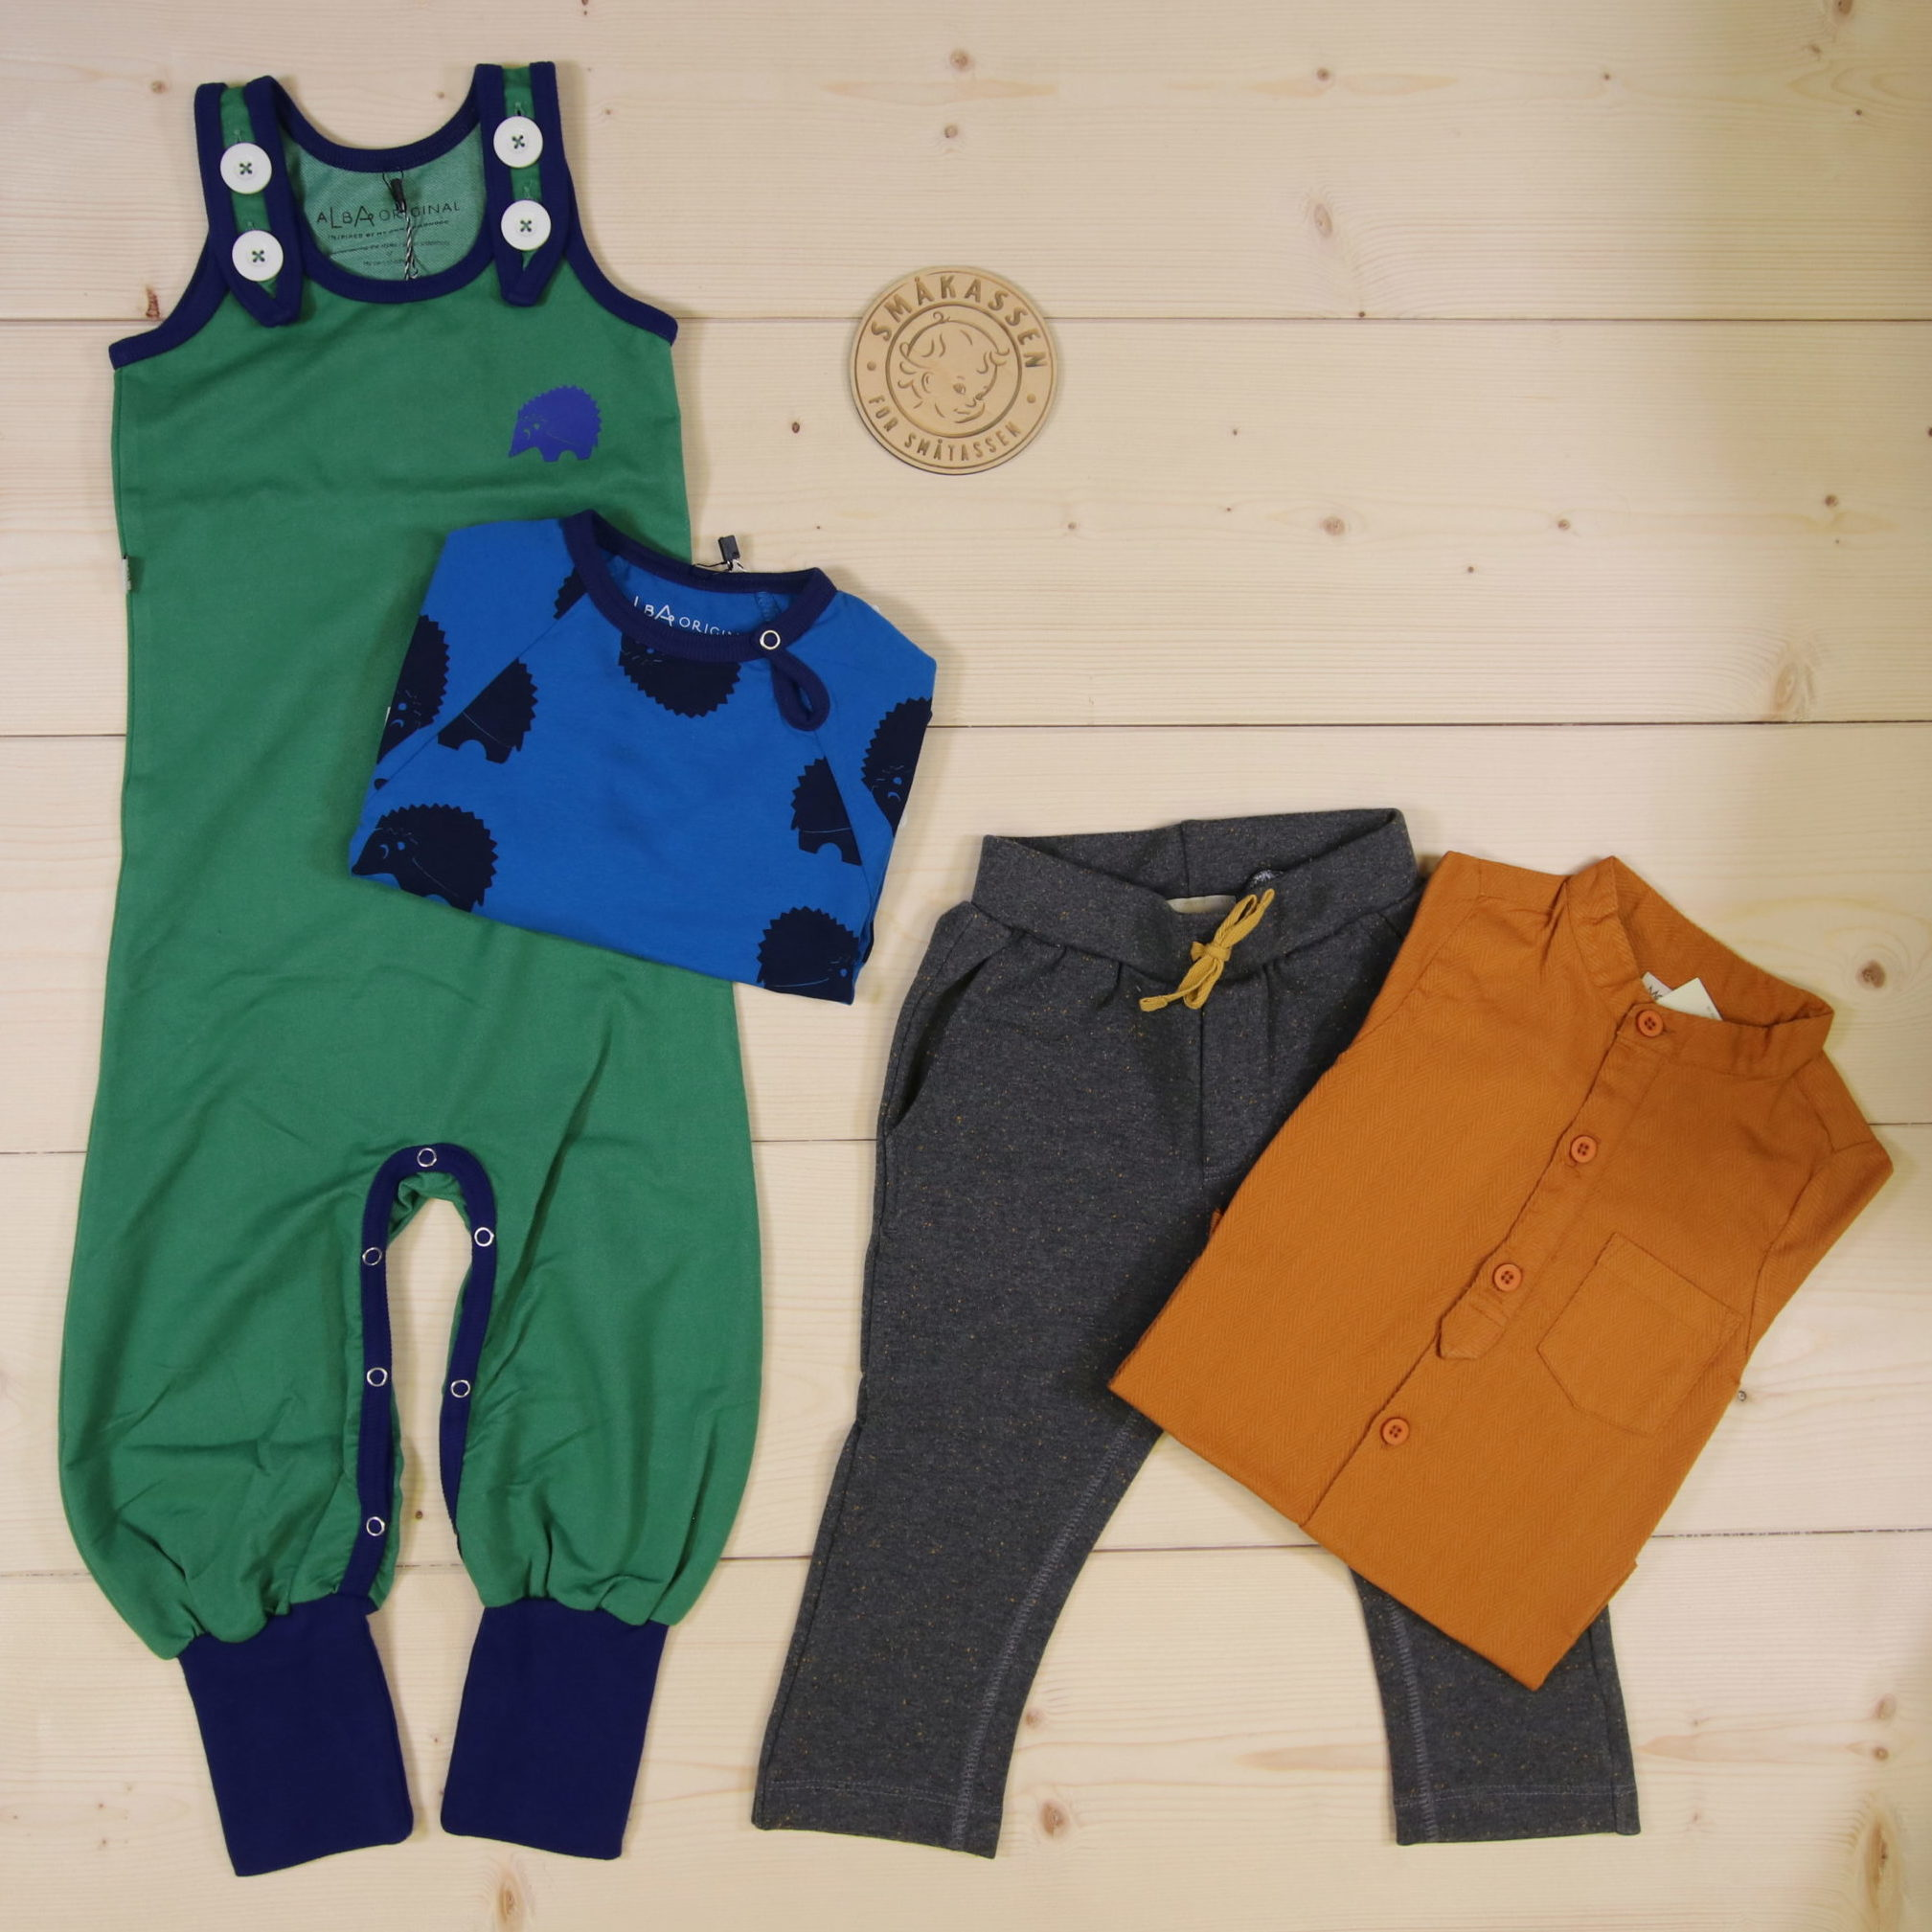 This is Småkassen that we prepared for a boy in the styles cute, cool, and colorful in size 92.